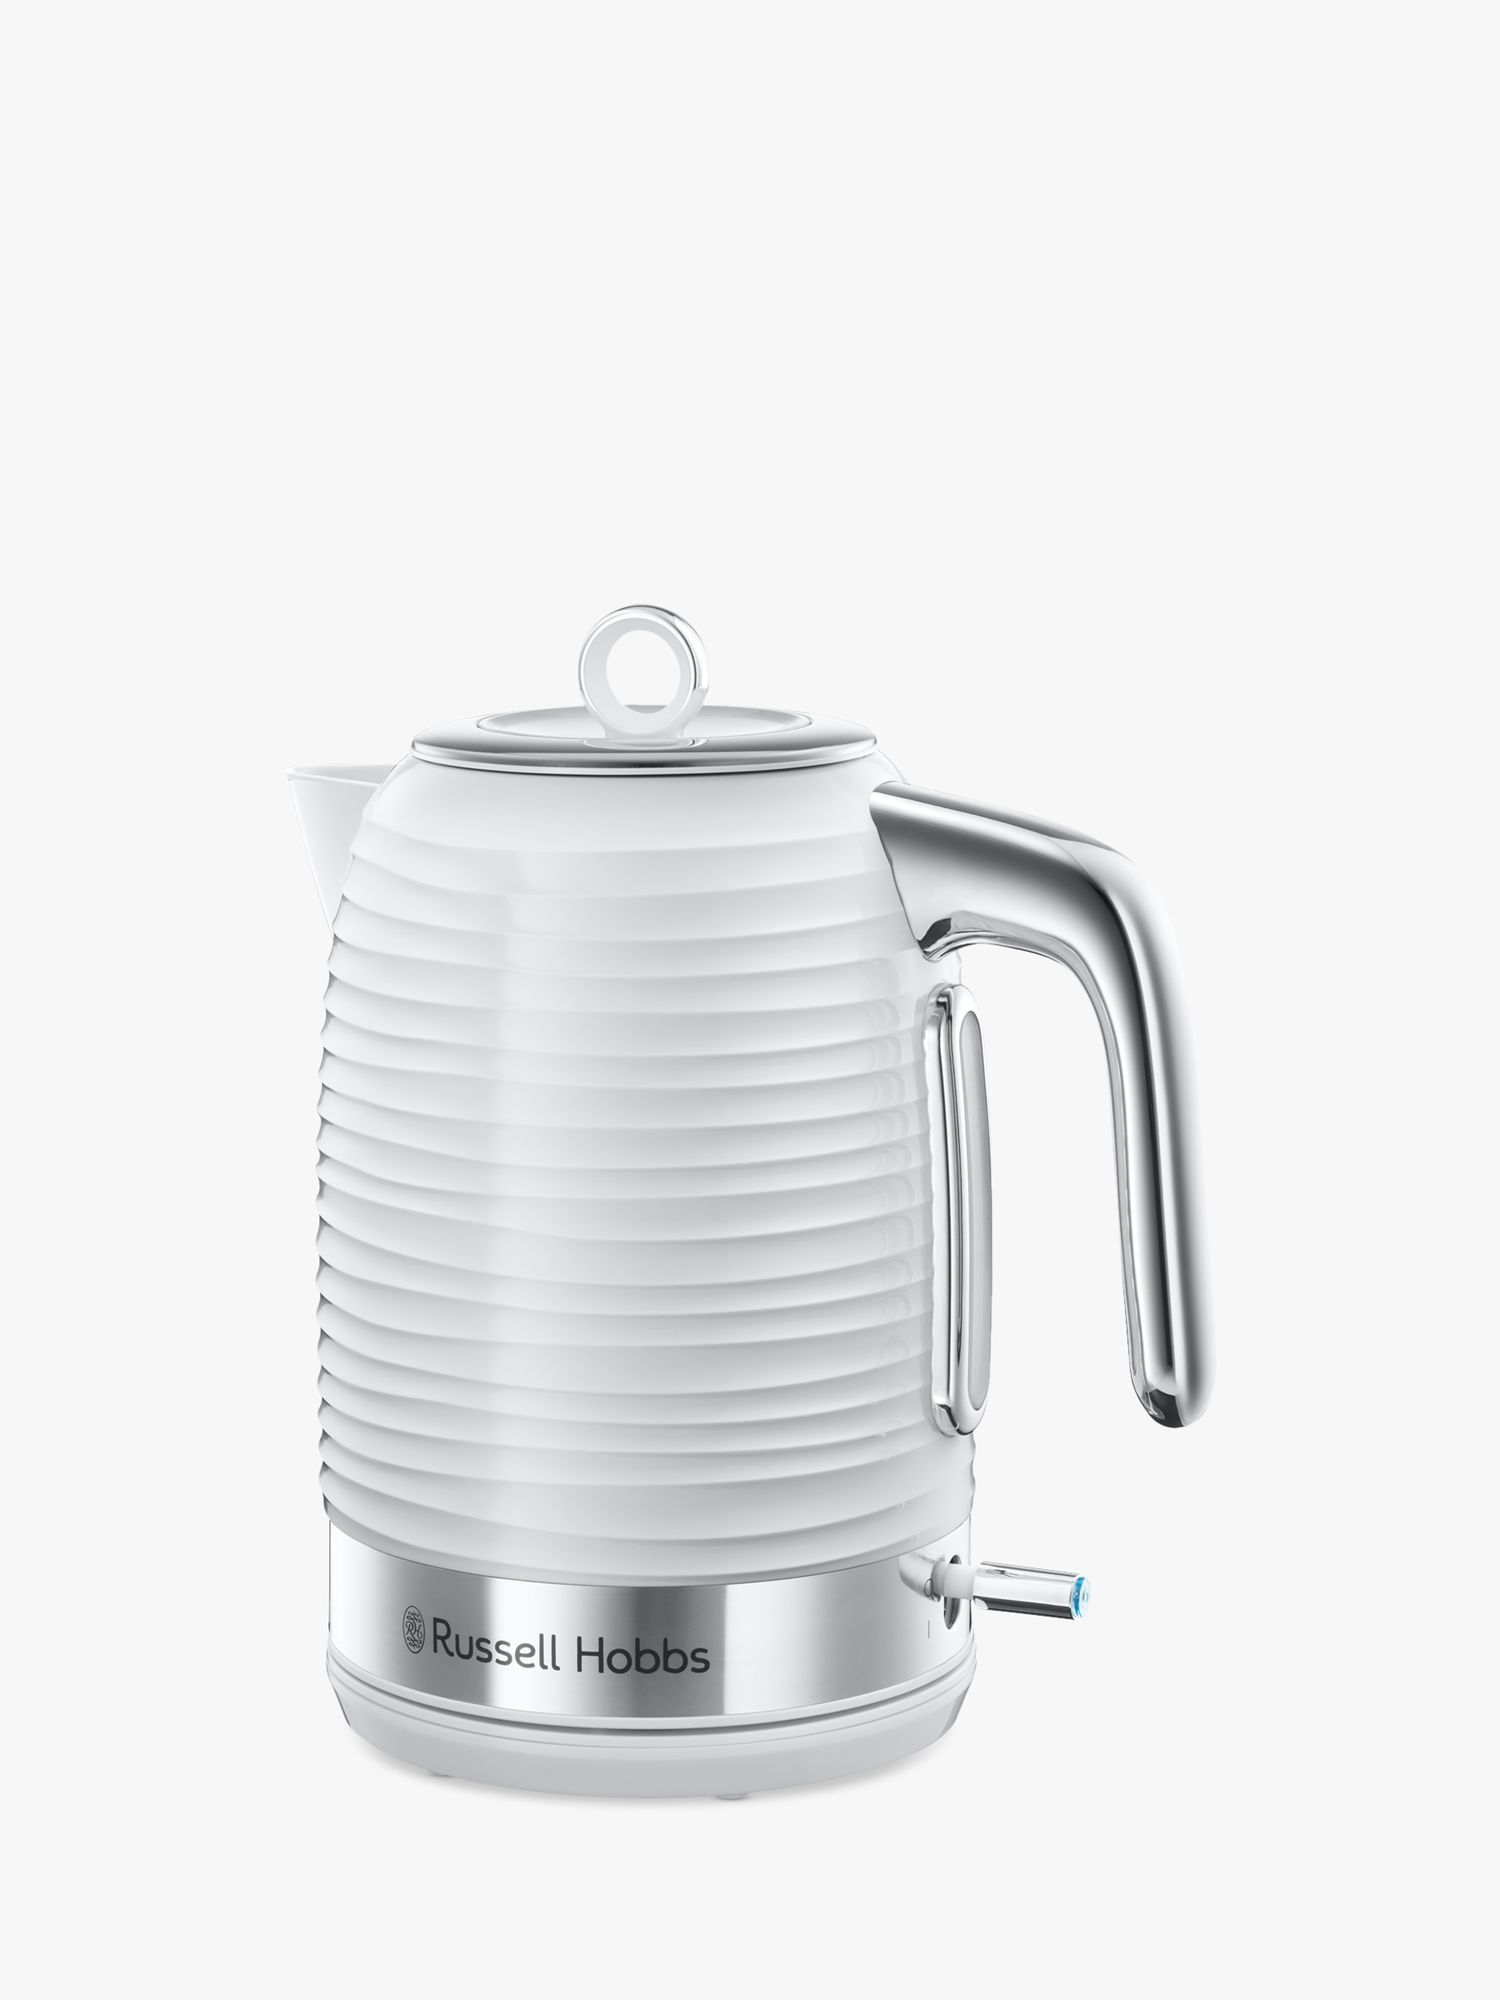 Hobbs Glass 1.7L Electric Kettle, Black